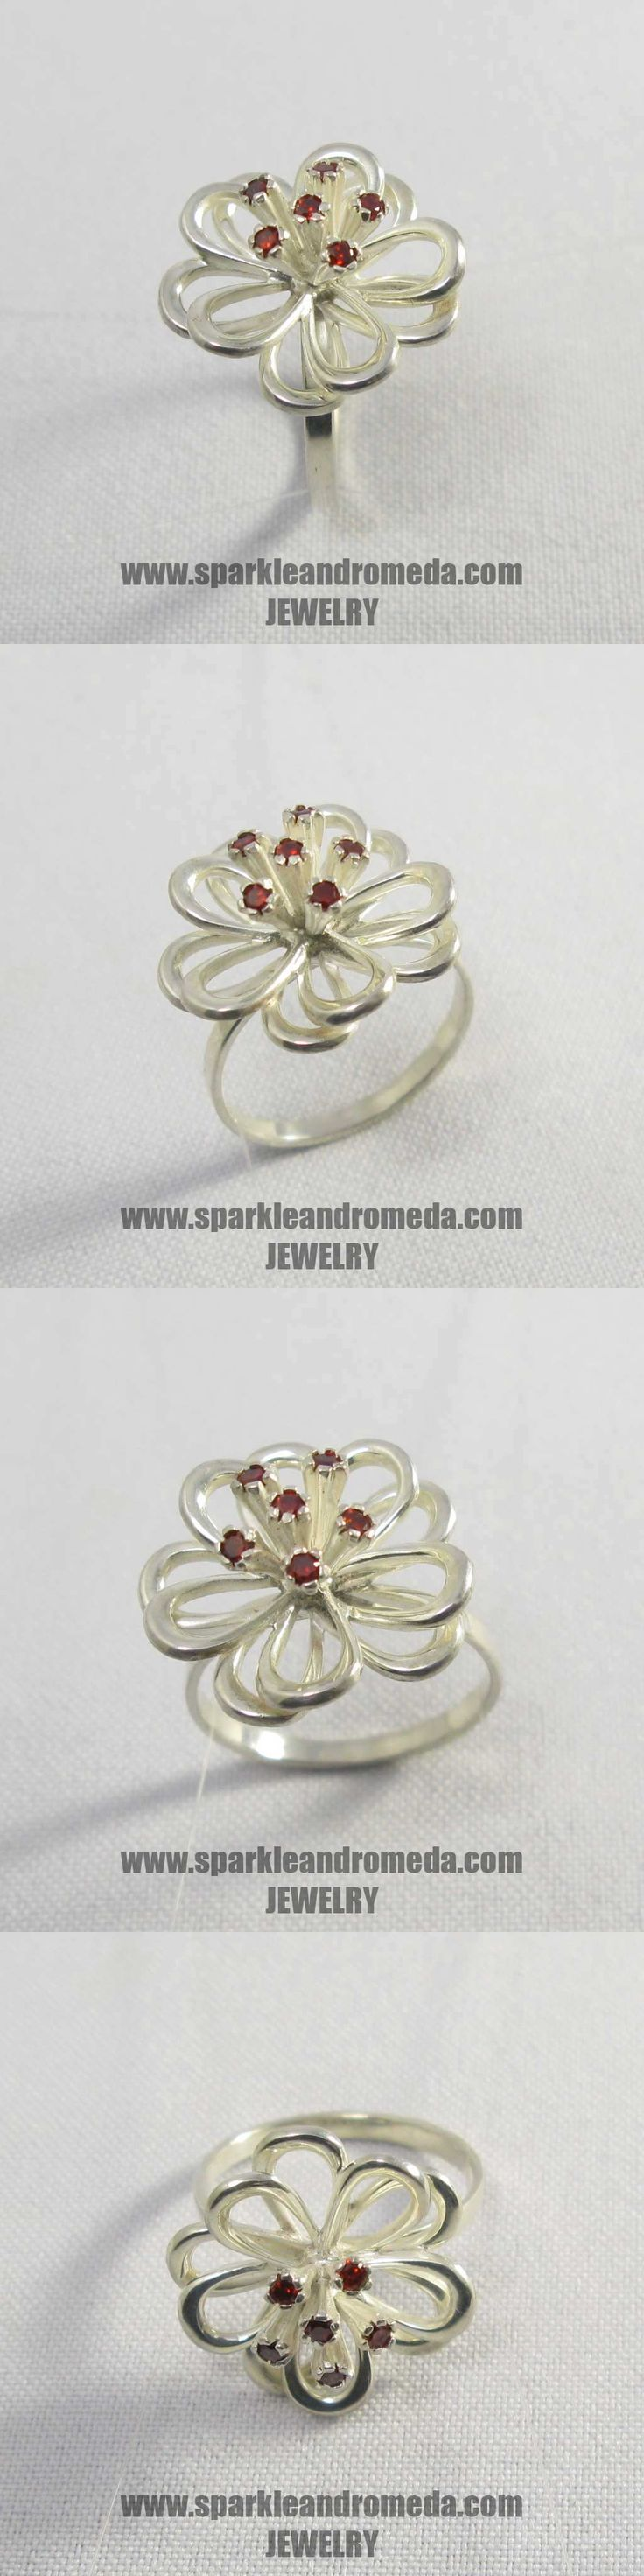 Sterling 925 silver ring with 6 round 2 mm red almandine color cubic zirconia gemstones.